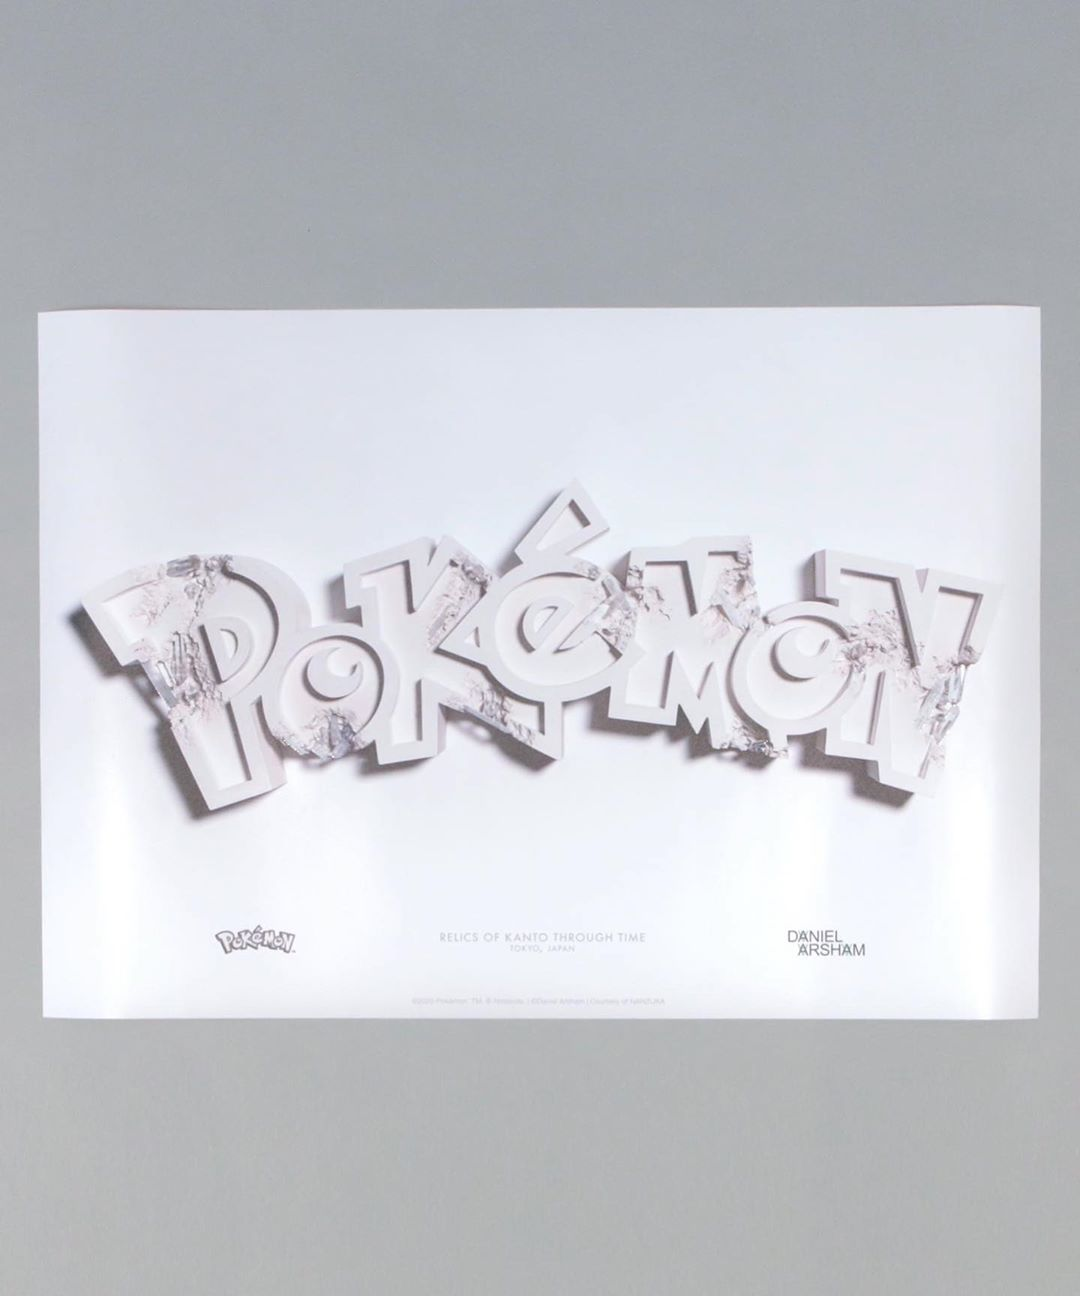 pokemon-relics-of-kanto-through-time-parco-museum-tokyo-release-20200731